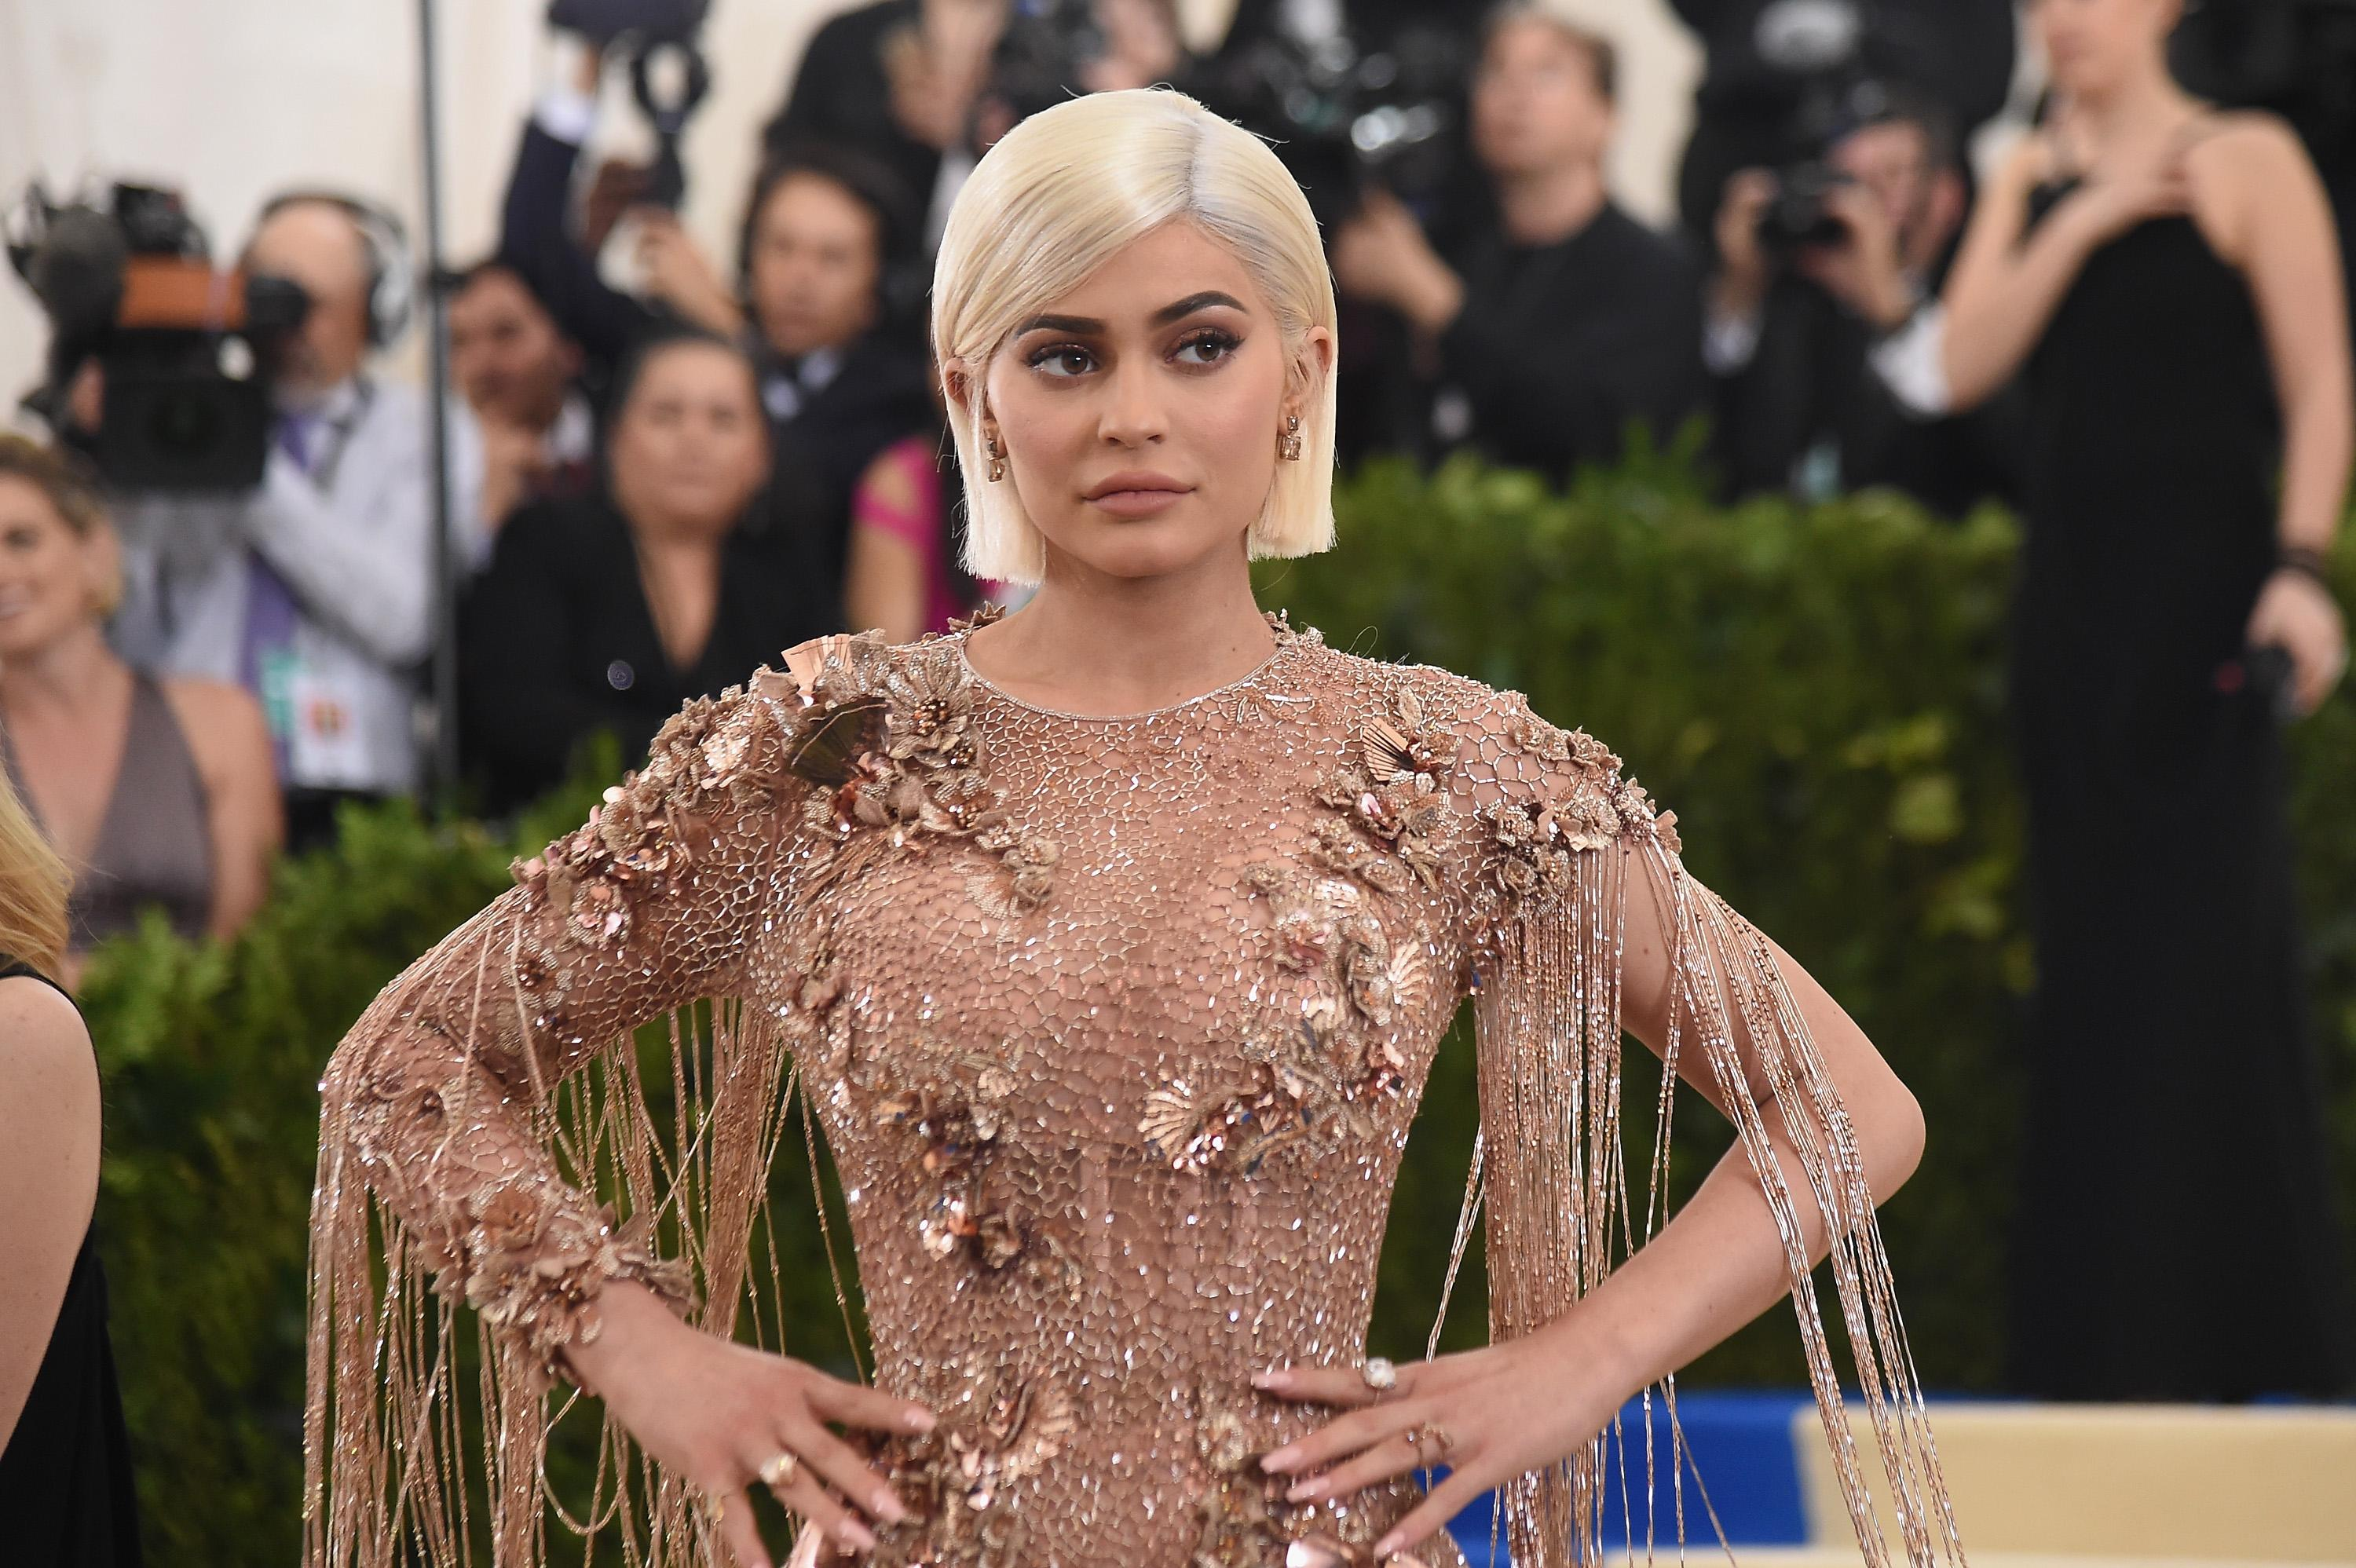 Kylie Jenner's household is anxious she's too younger to be mother